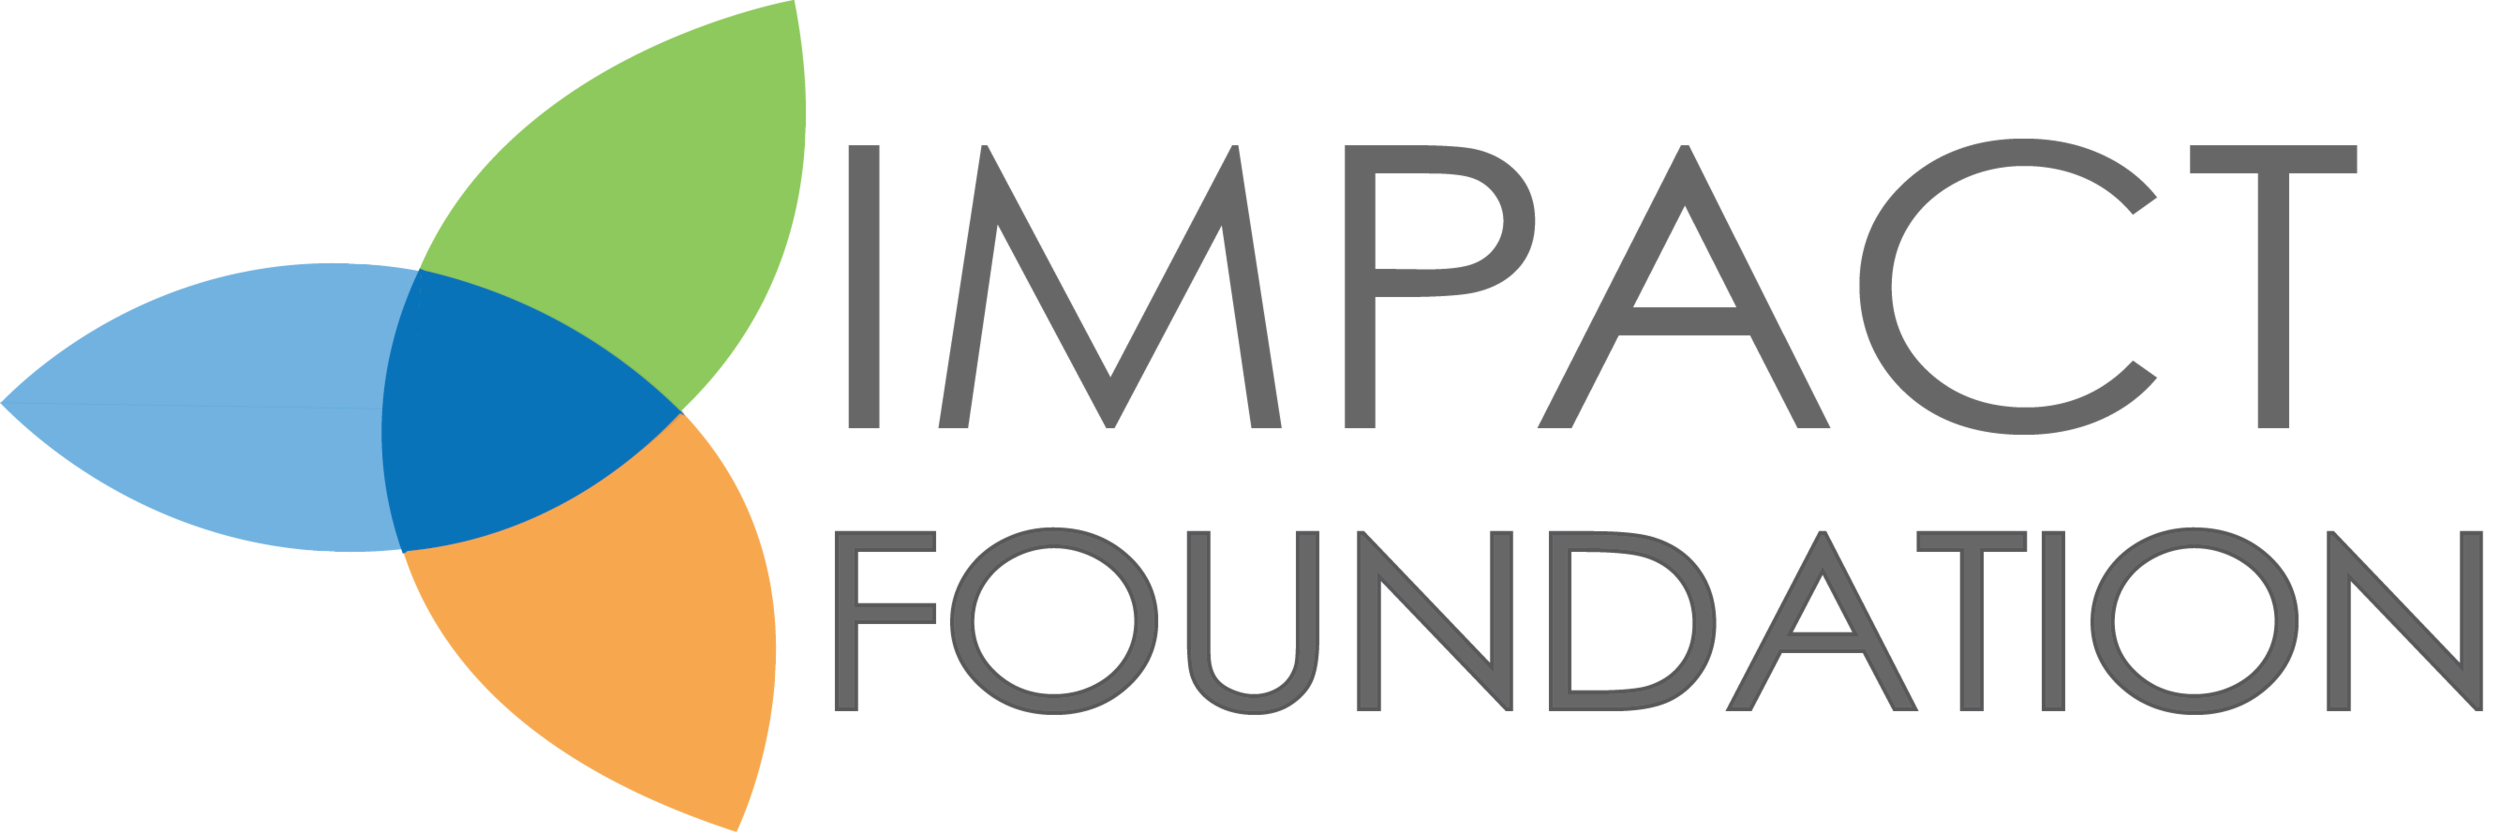 impact foundation logo.png